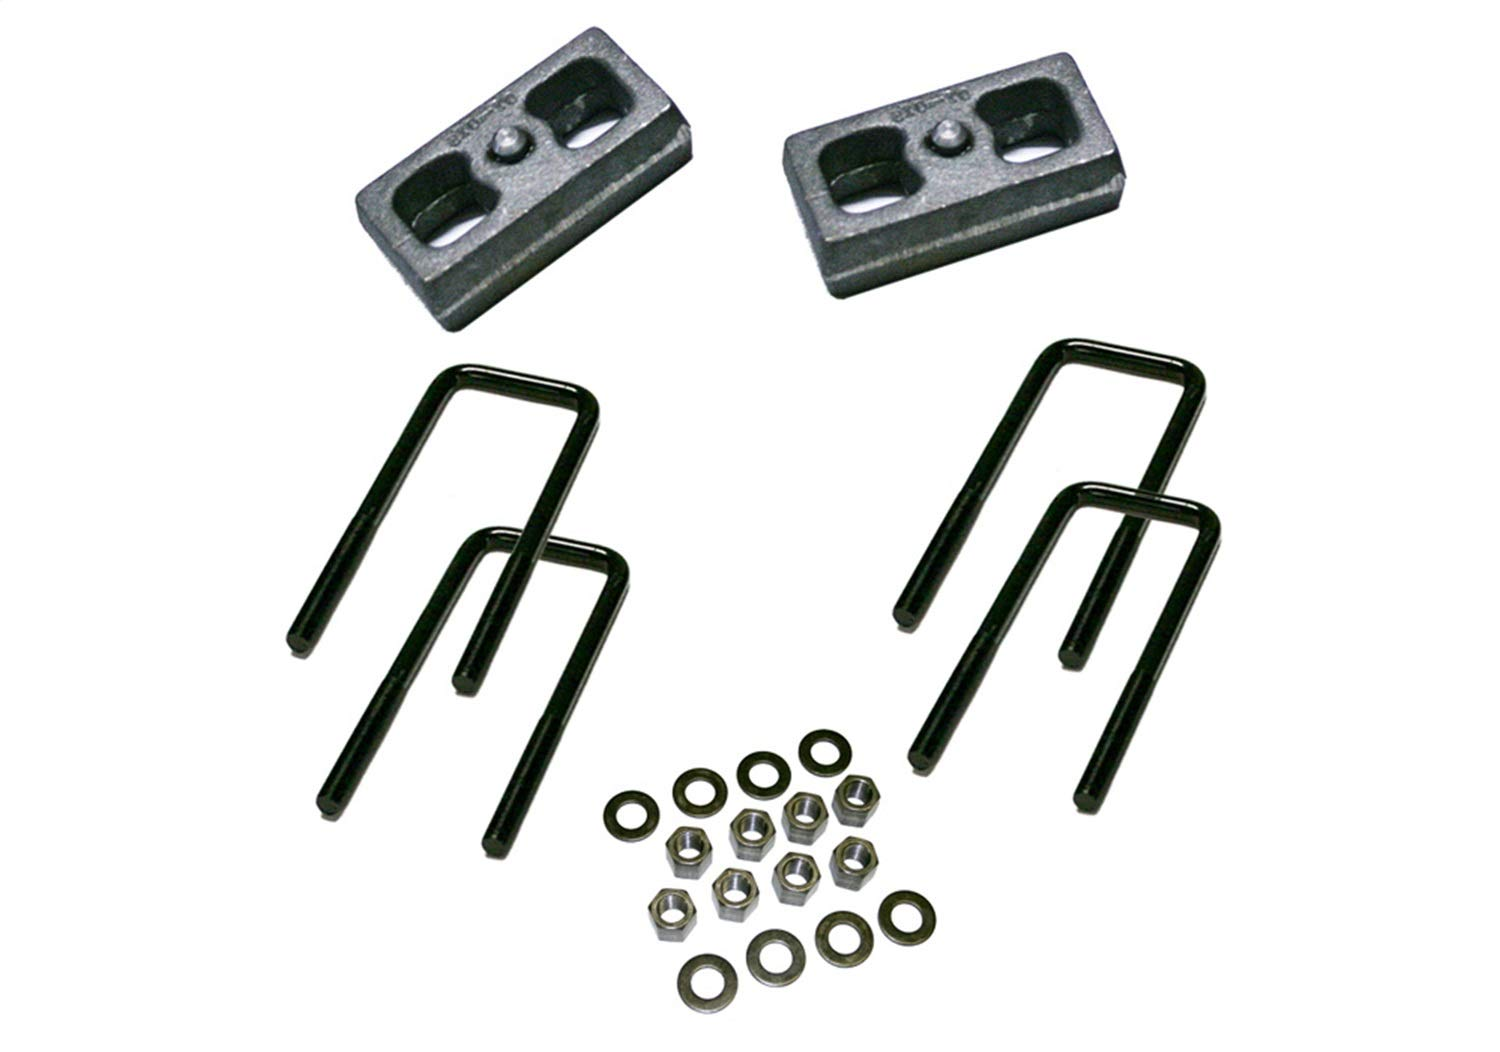 Superlift Suspension Block Kit And U-Bolt 2 in. Lift